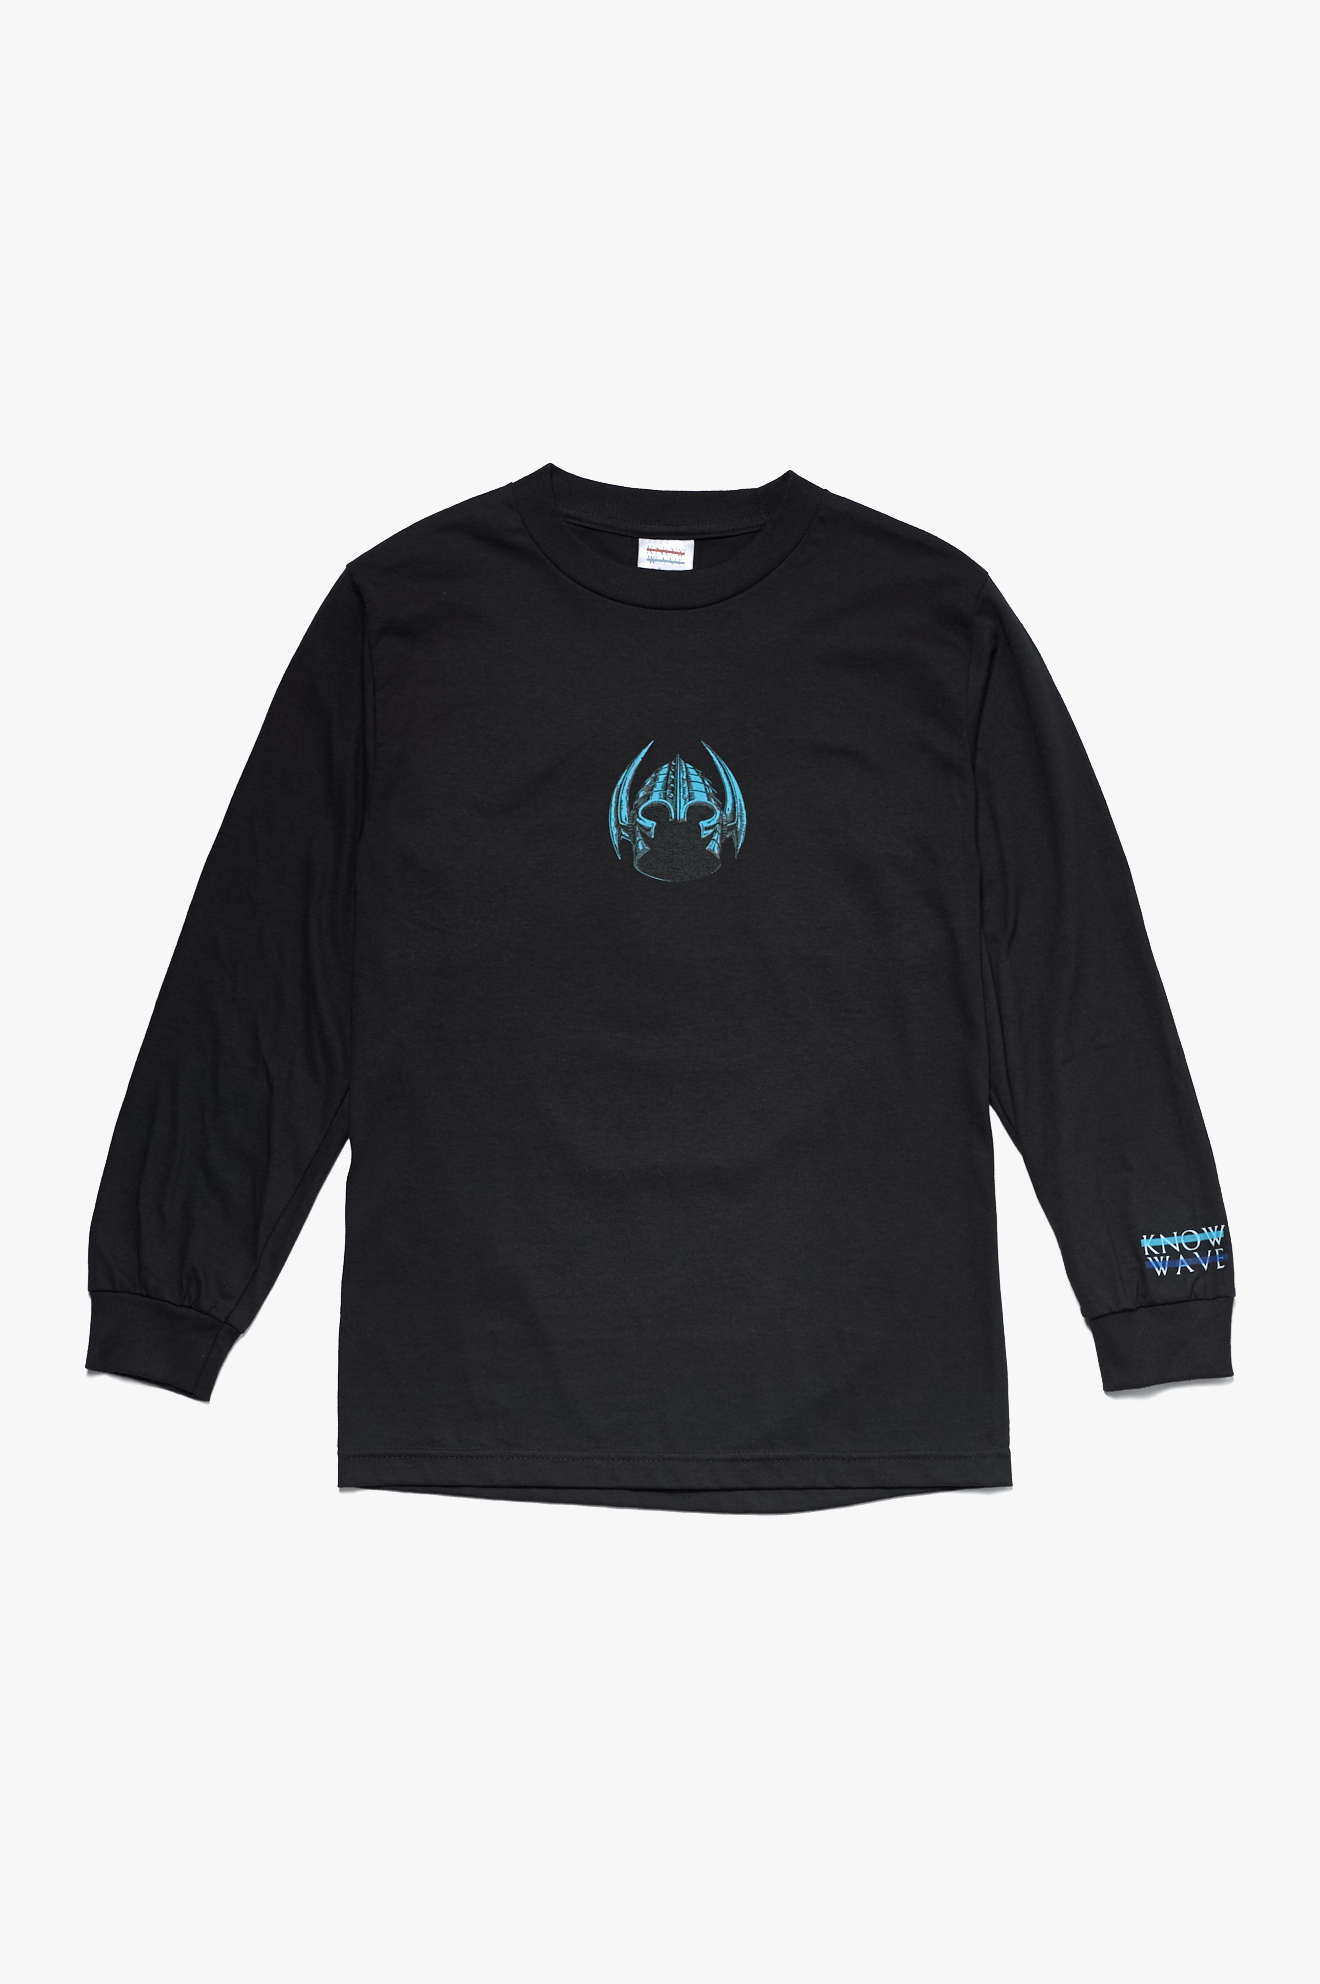 Skate Wise Long Sleeve T-Shirt Black